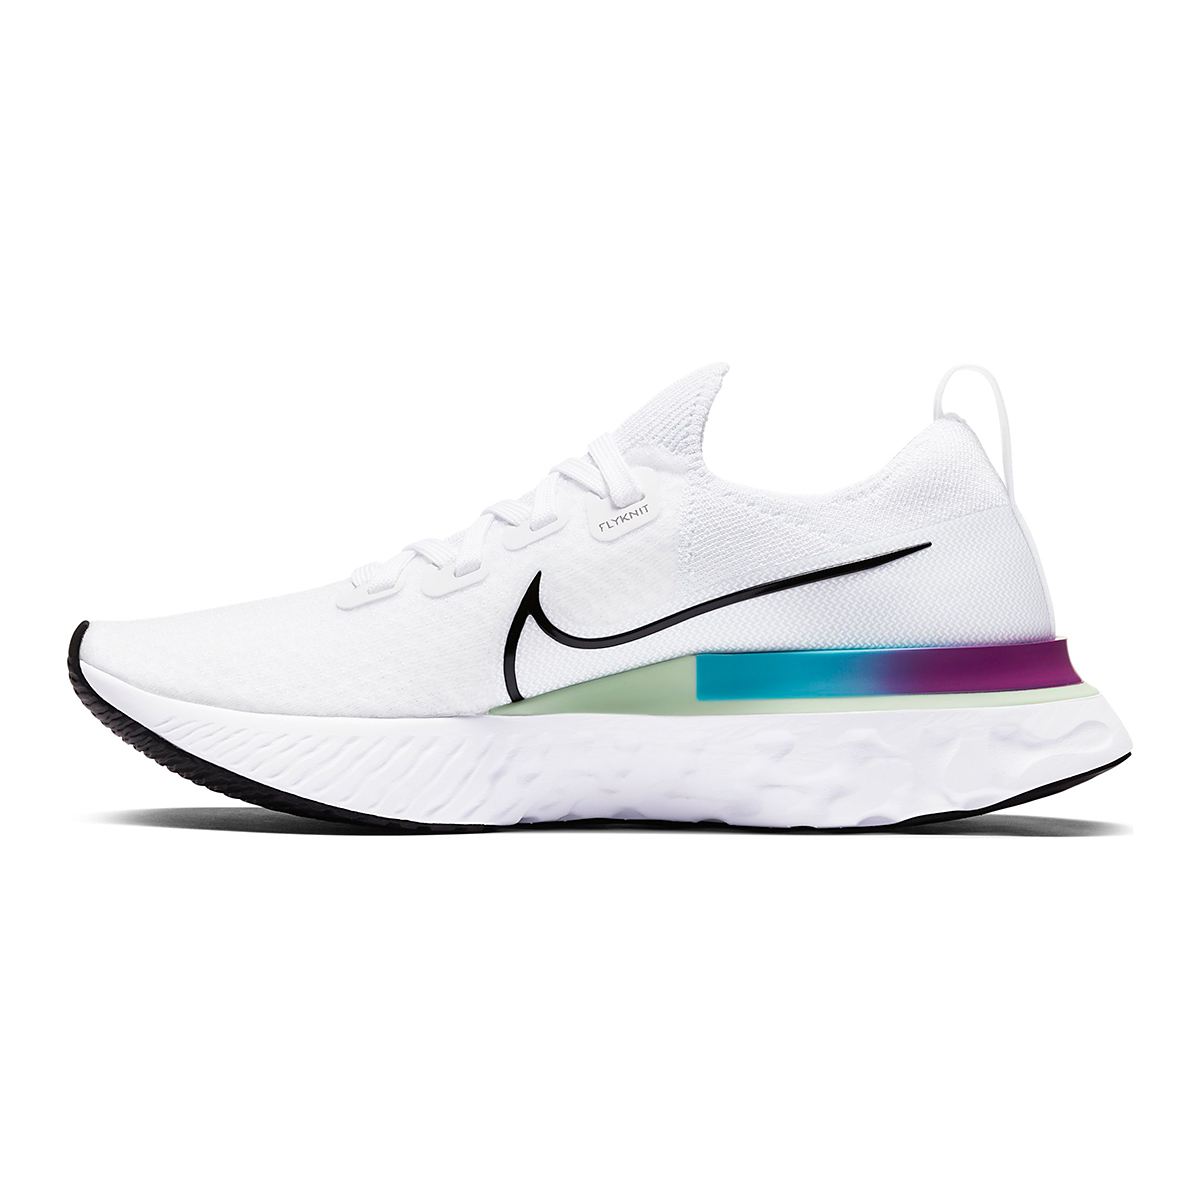 Women's Nike React Infinity Run Flyknit Running Shoes - Color: White/Vapor Green/Oracle Aqua/Black - Size: 5 - Width: Regular, White/Vapor Green/Oracle Aqua/Black, large, image 4